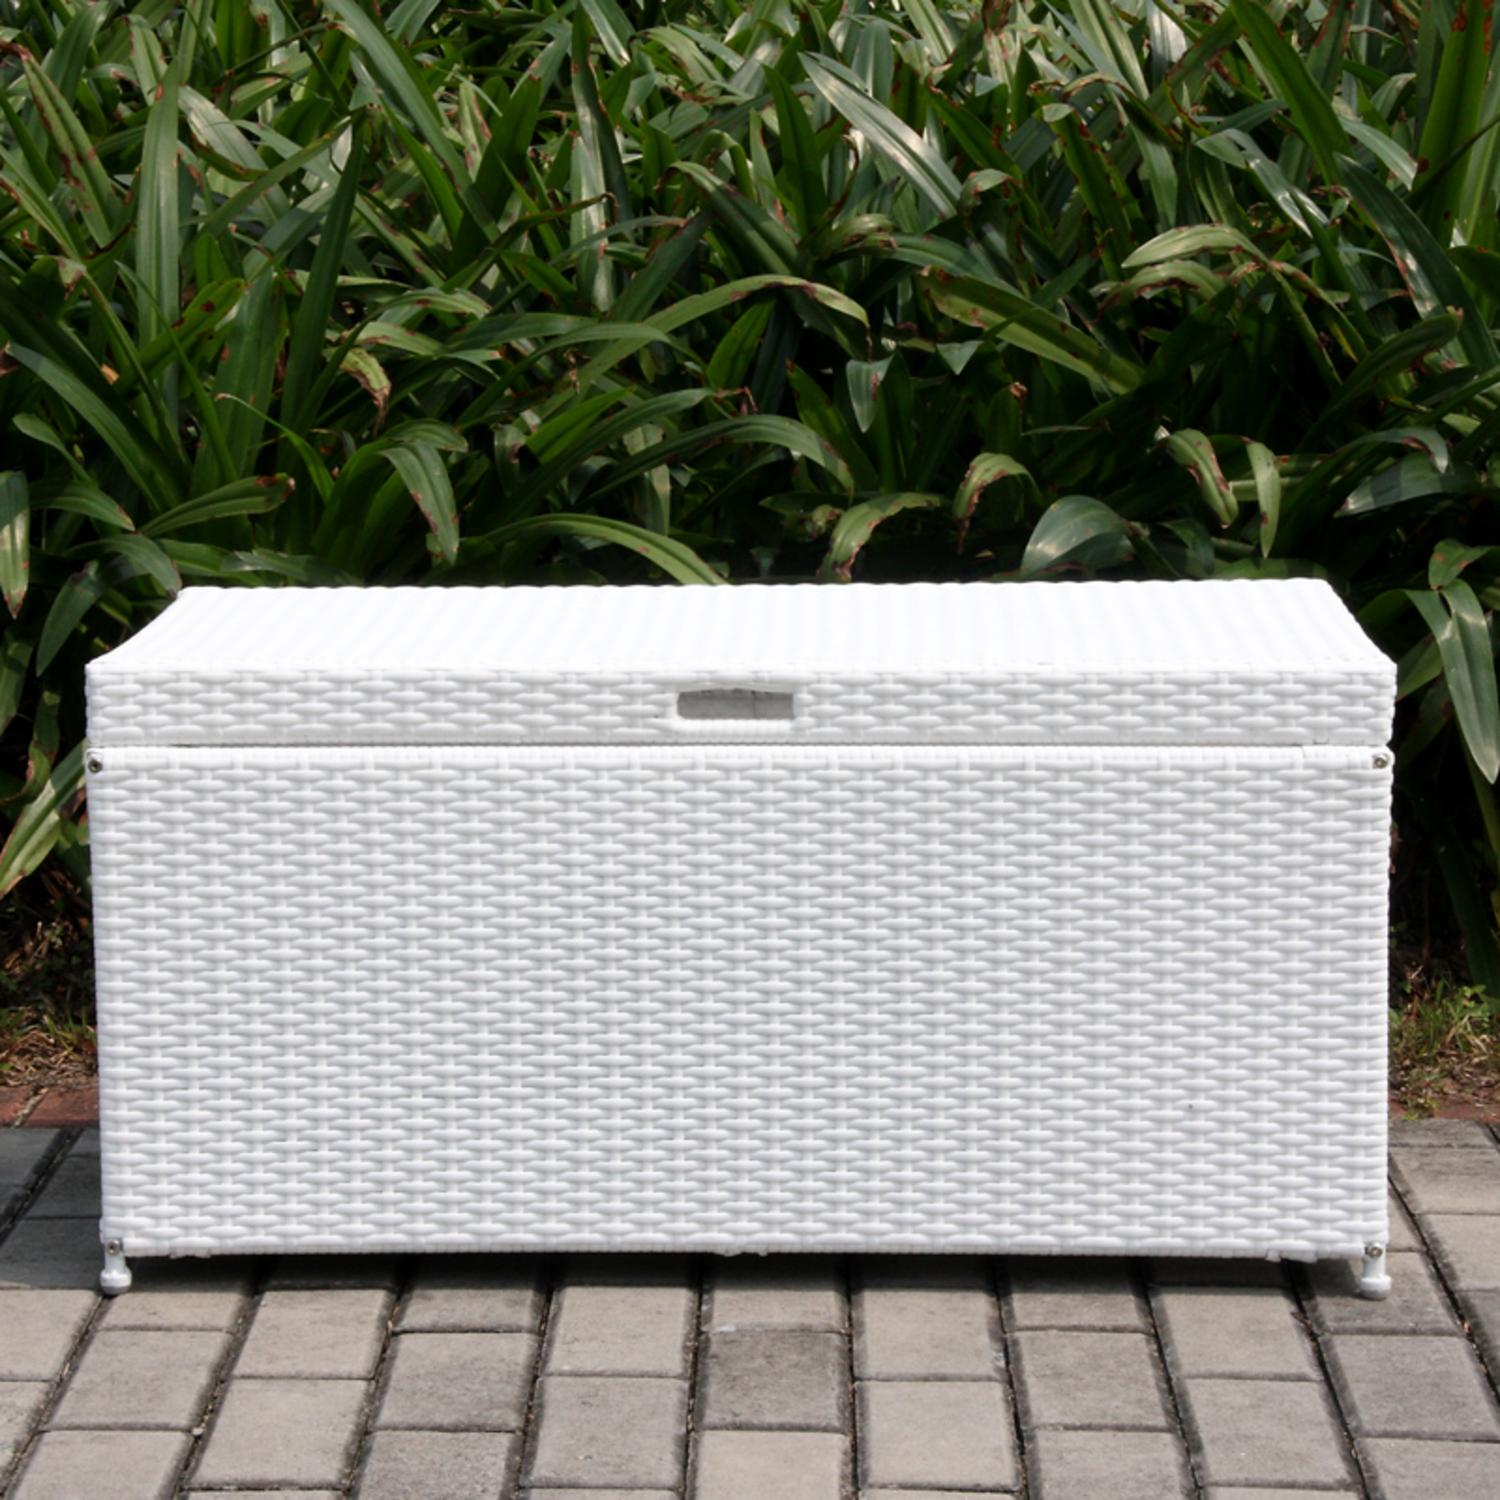 "40"" White Resin Wicker Outdoor Patio Garden Hinged Lidded Storage Deck Box by CC Outdoor Living"